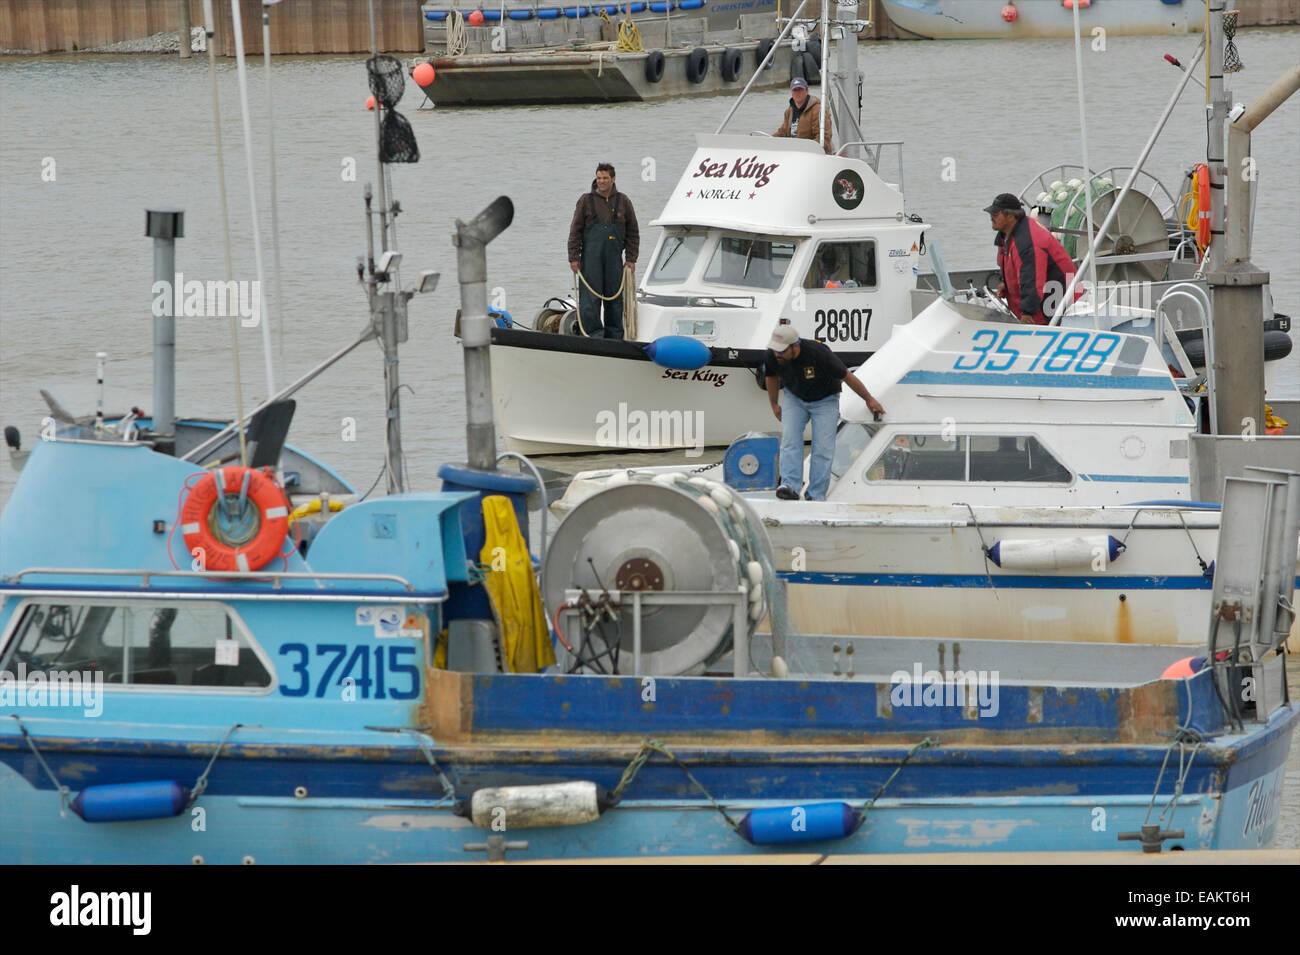 Alaska dillingham county - Bristol Bay Set Net Commercial Fishing Boat Moored At Dillingham Alaska Stock Image